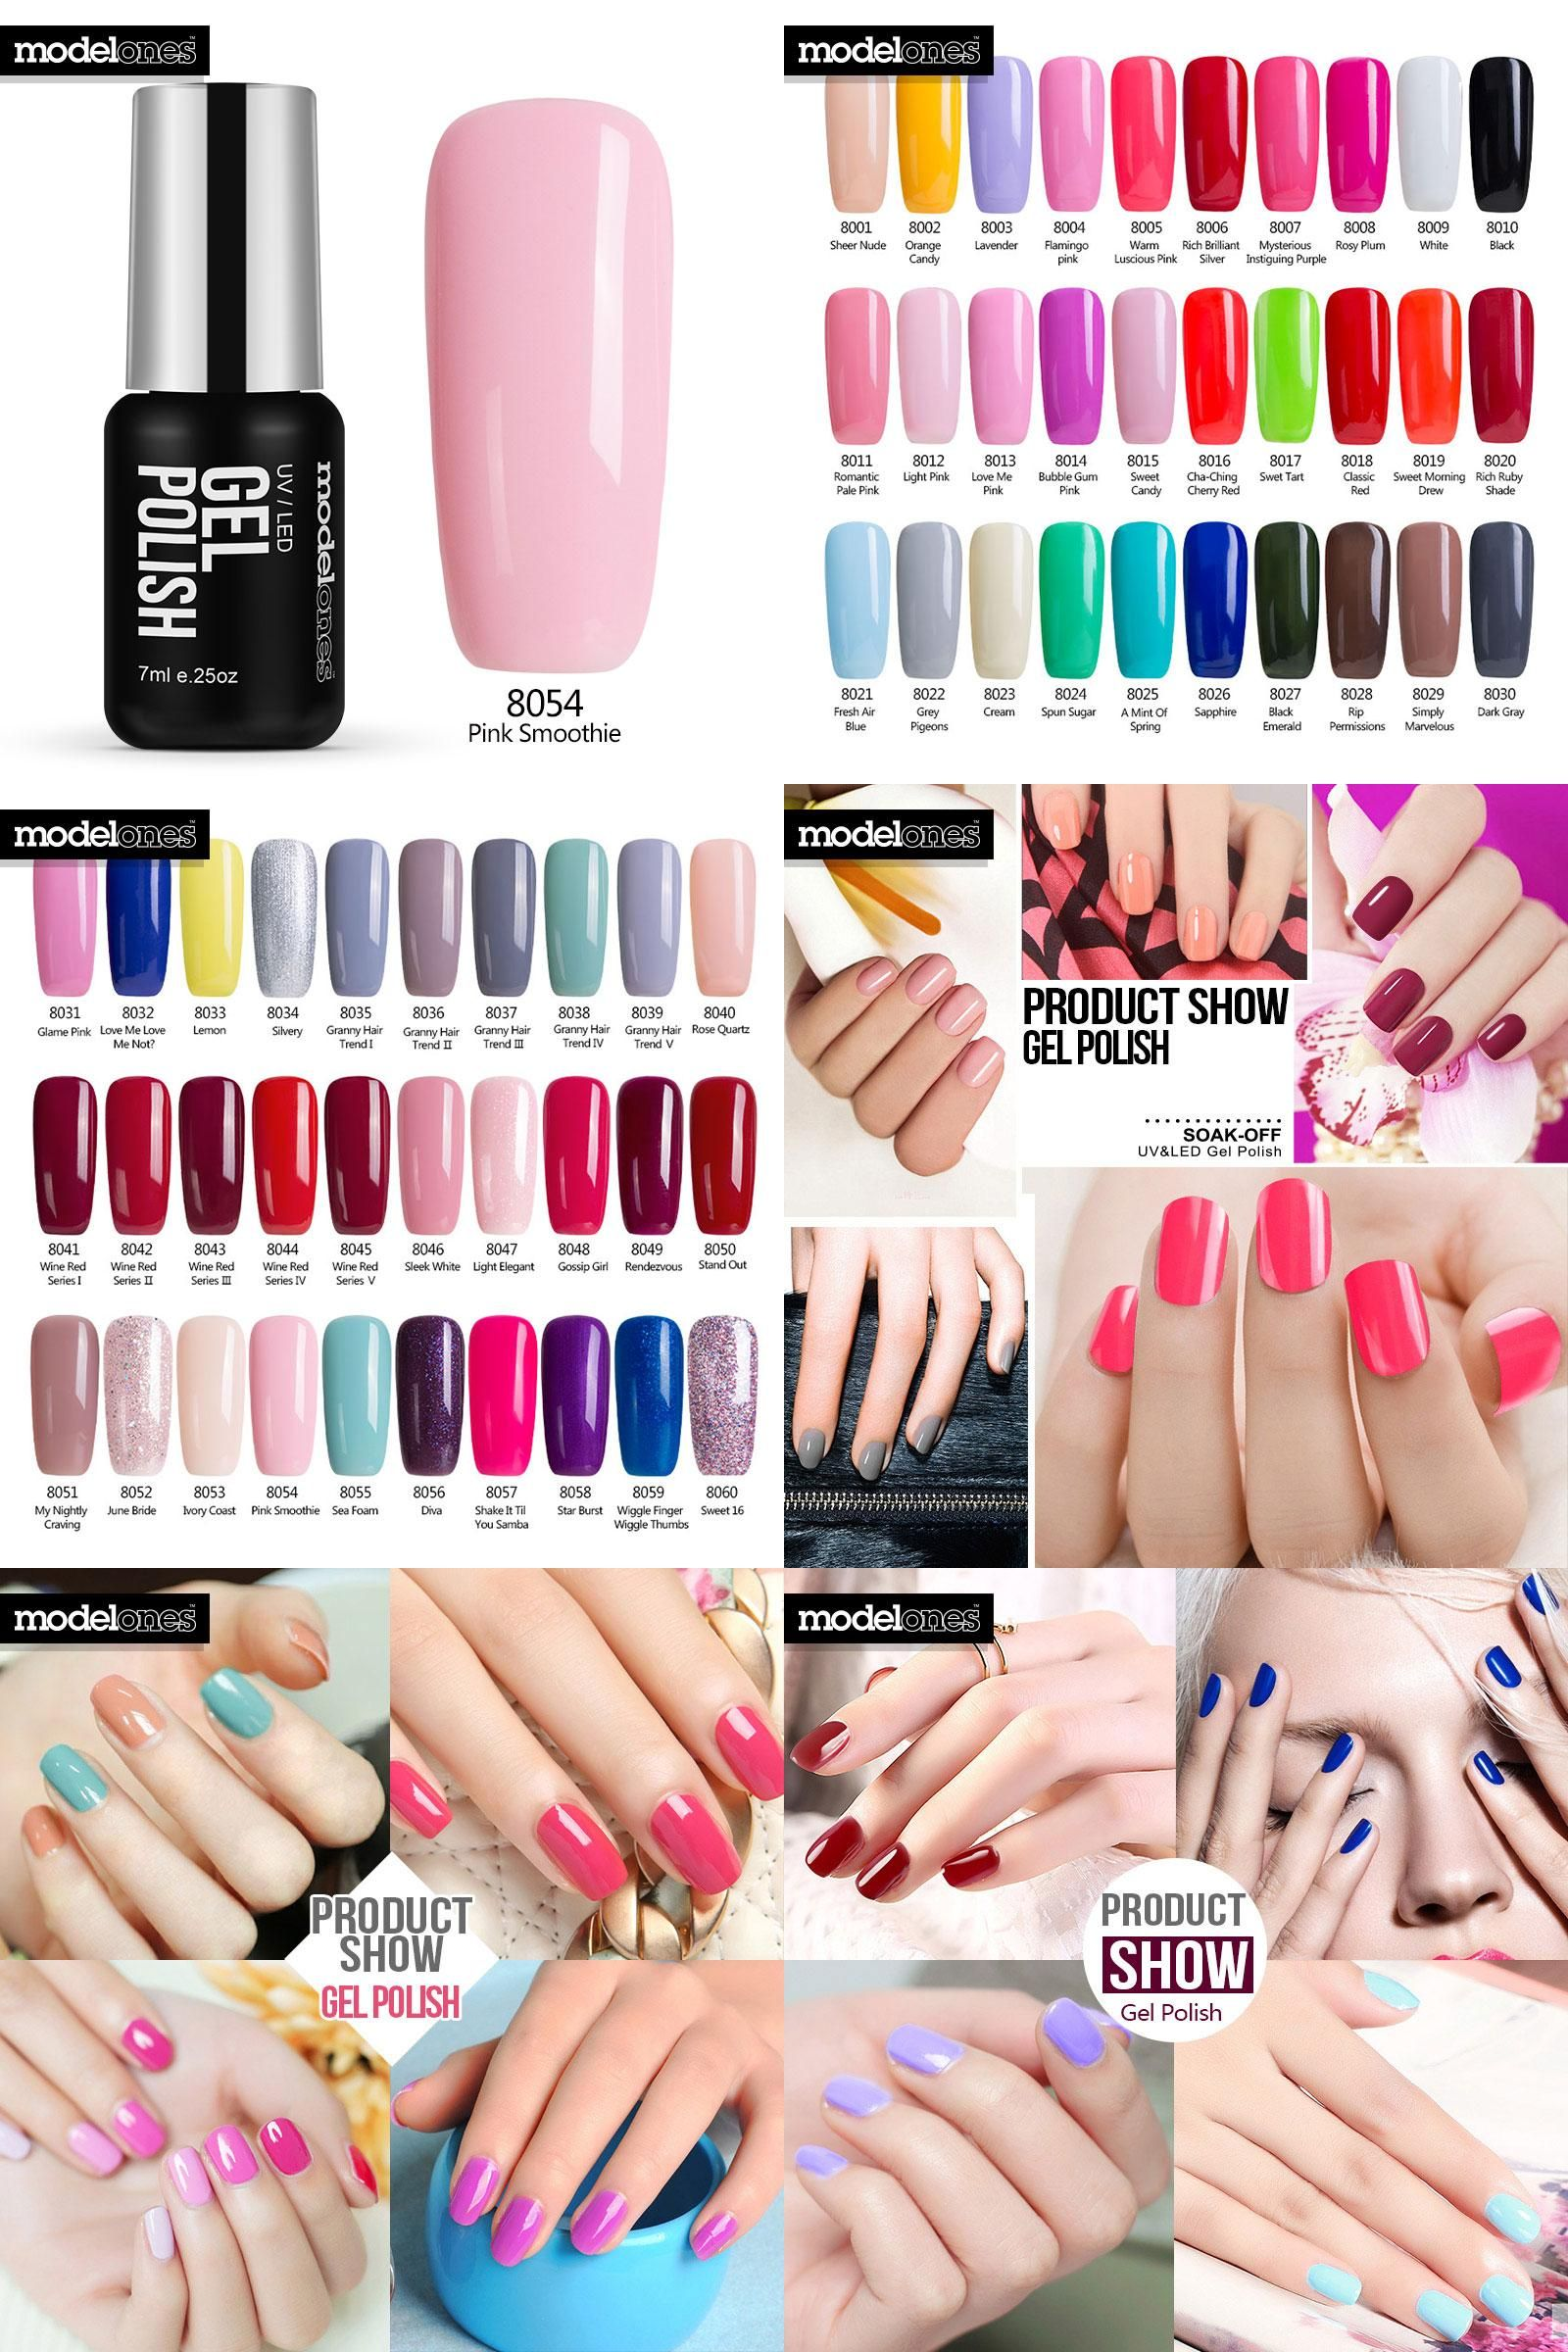 Visit To Buy Modelones French Manicure Kit Pink Color Uv Nail Gel